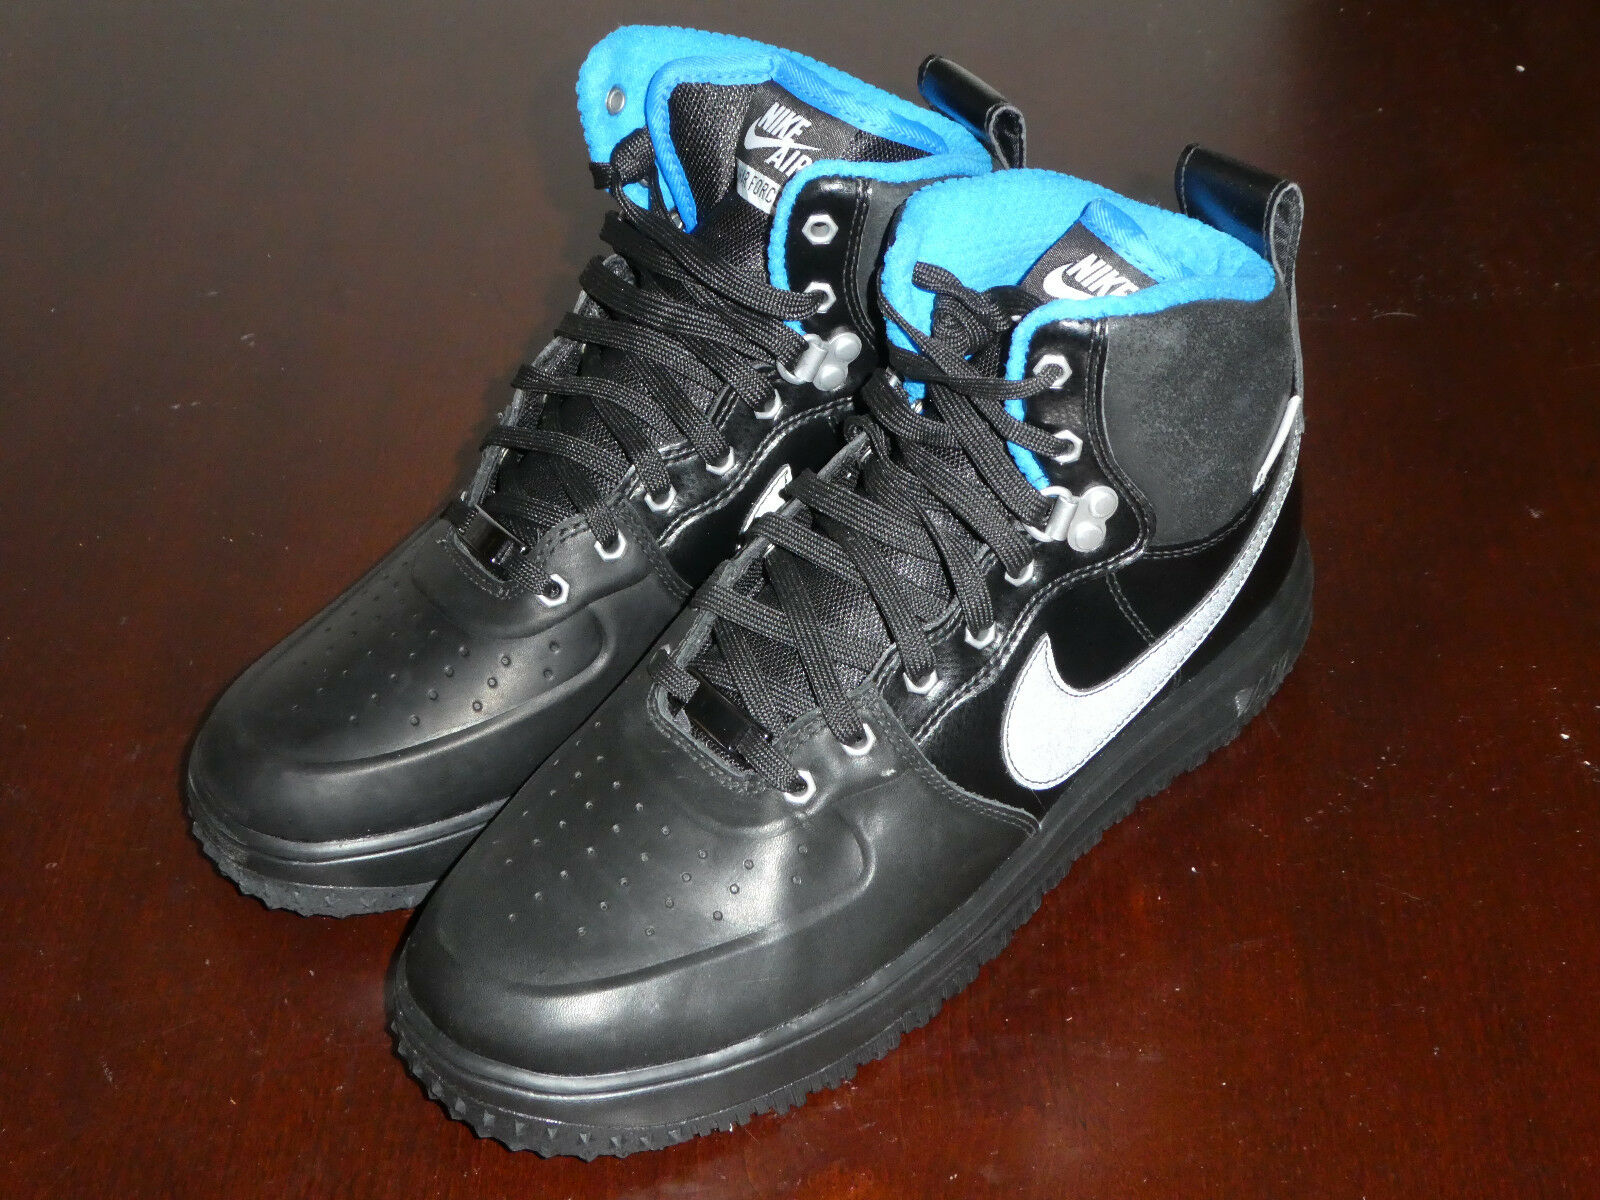 Nike Lunar Force 1 sneakerboot boots shoes mens new 654481 003